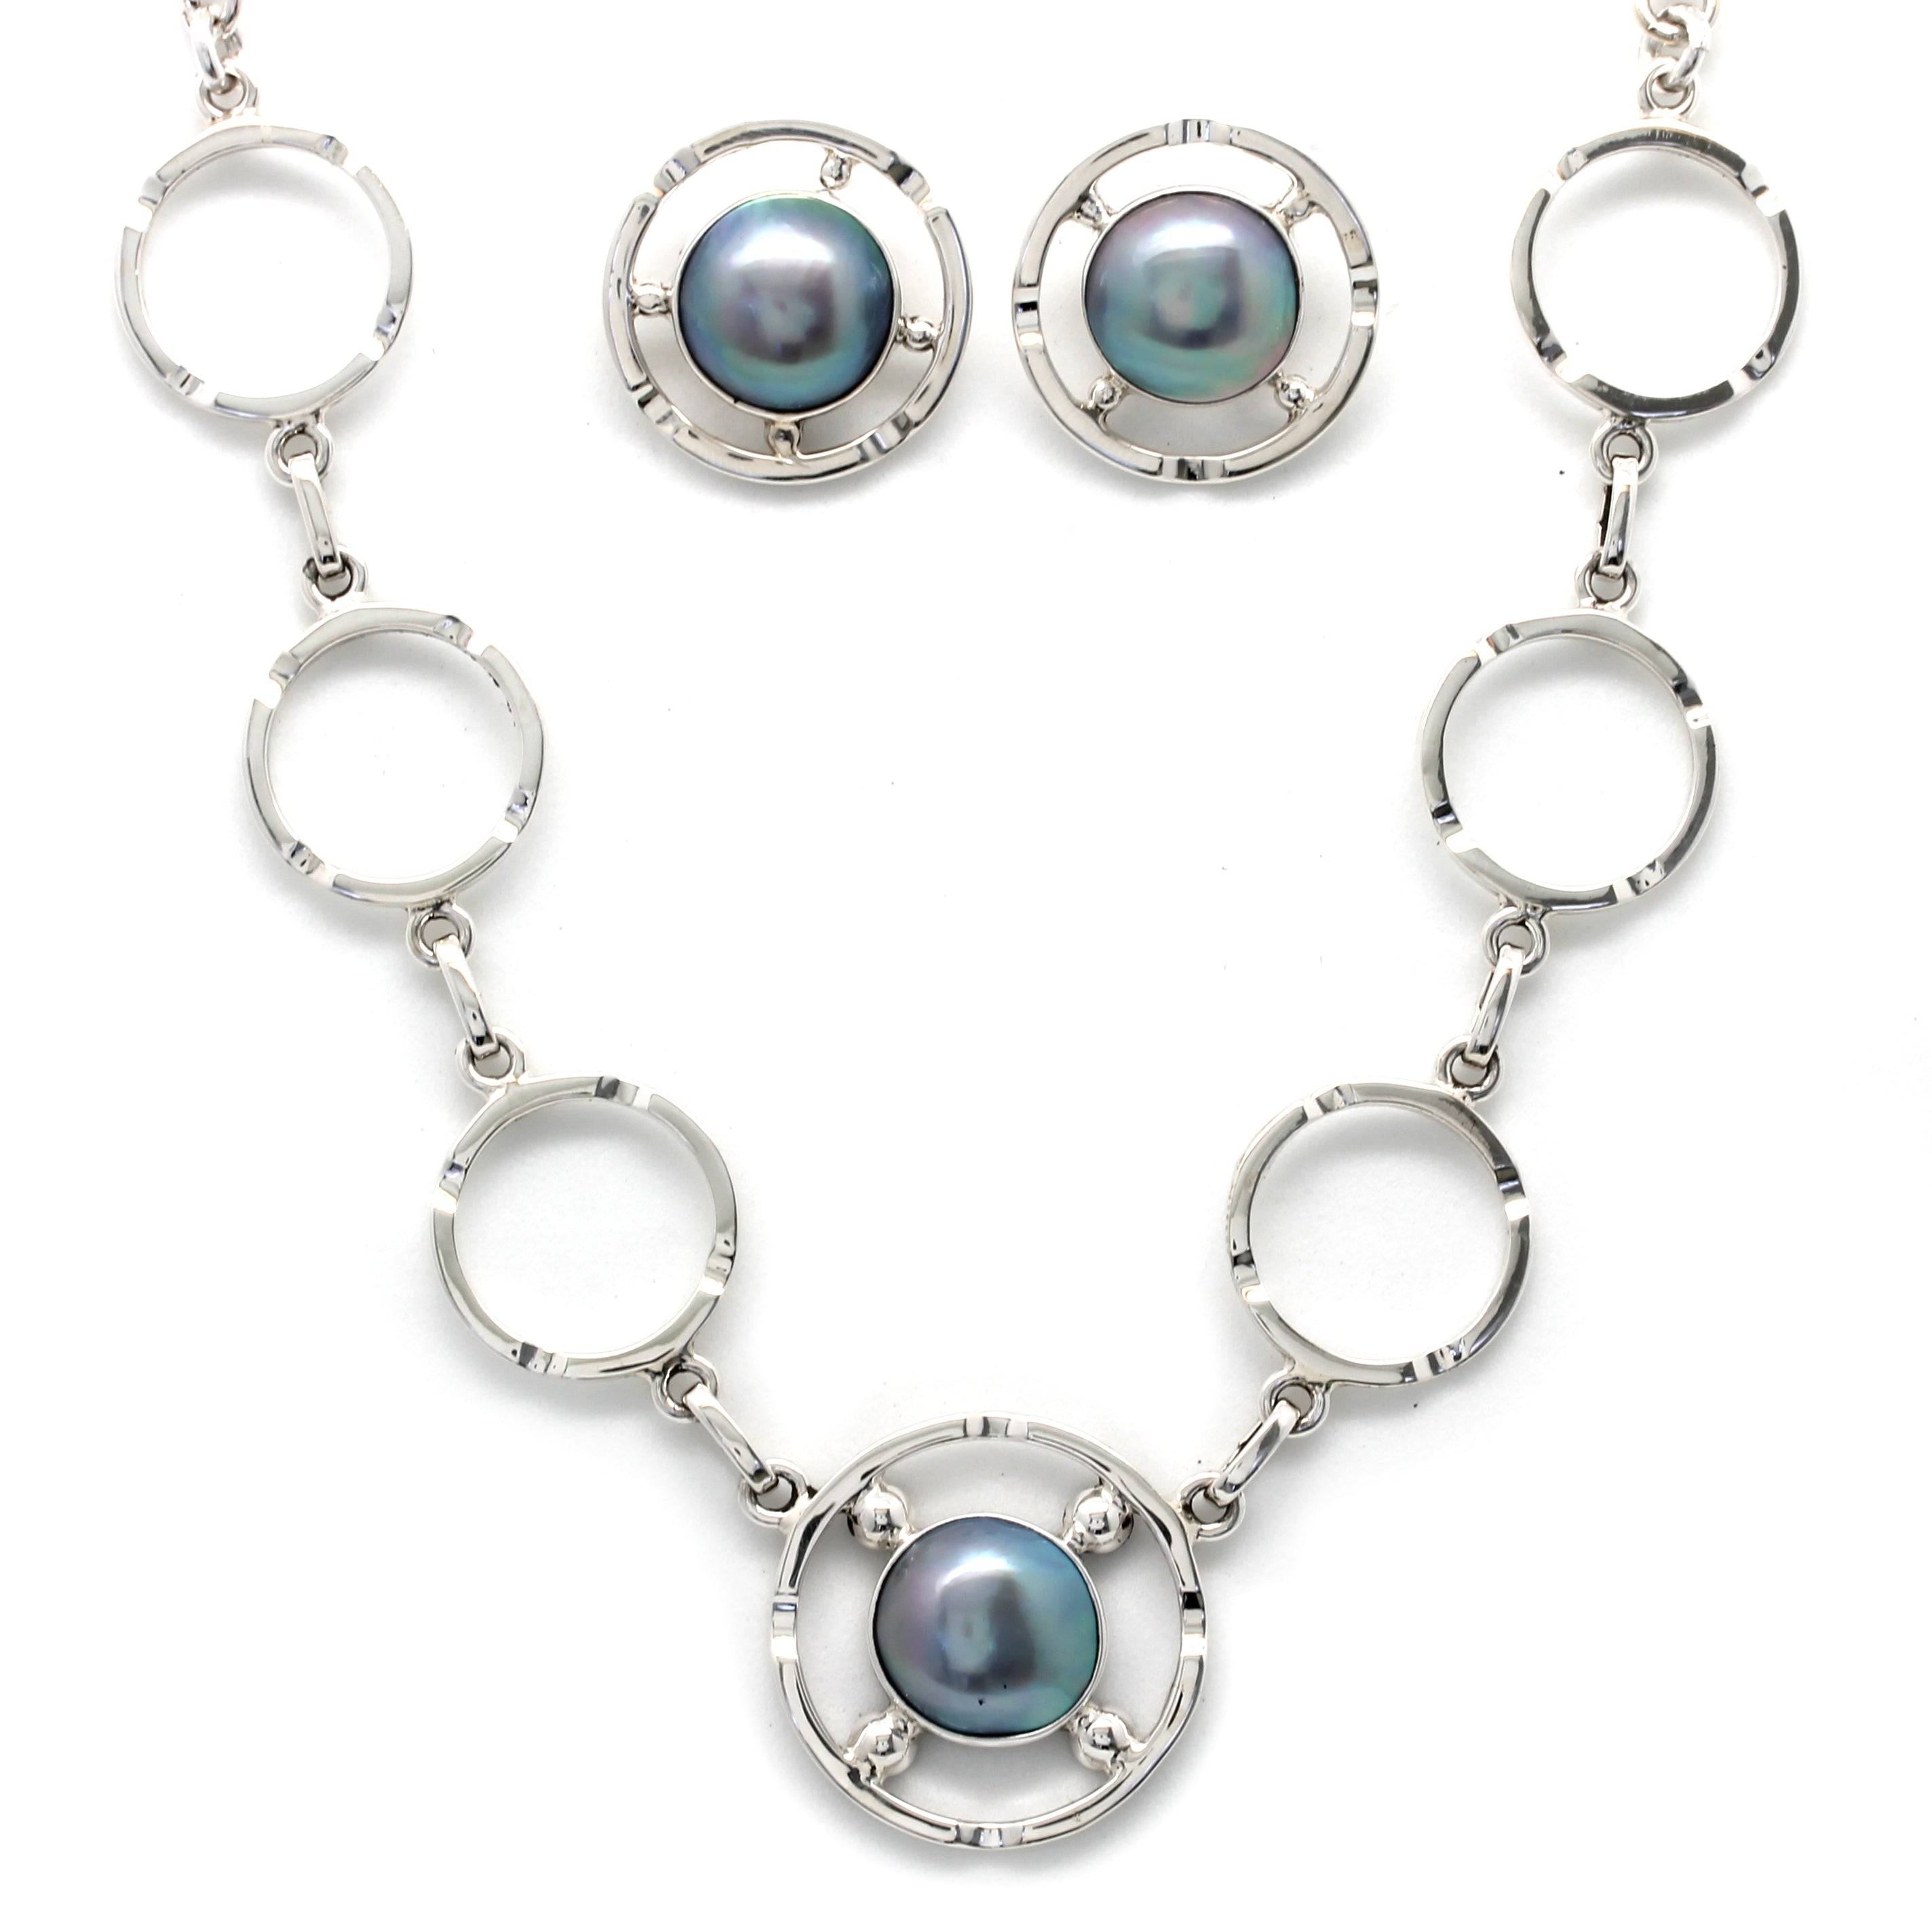 Jewelry Set - Silver Necklace and Earrings with Cortez Mabe Pearls